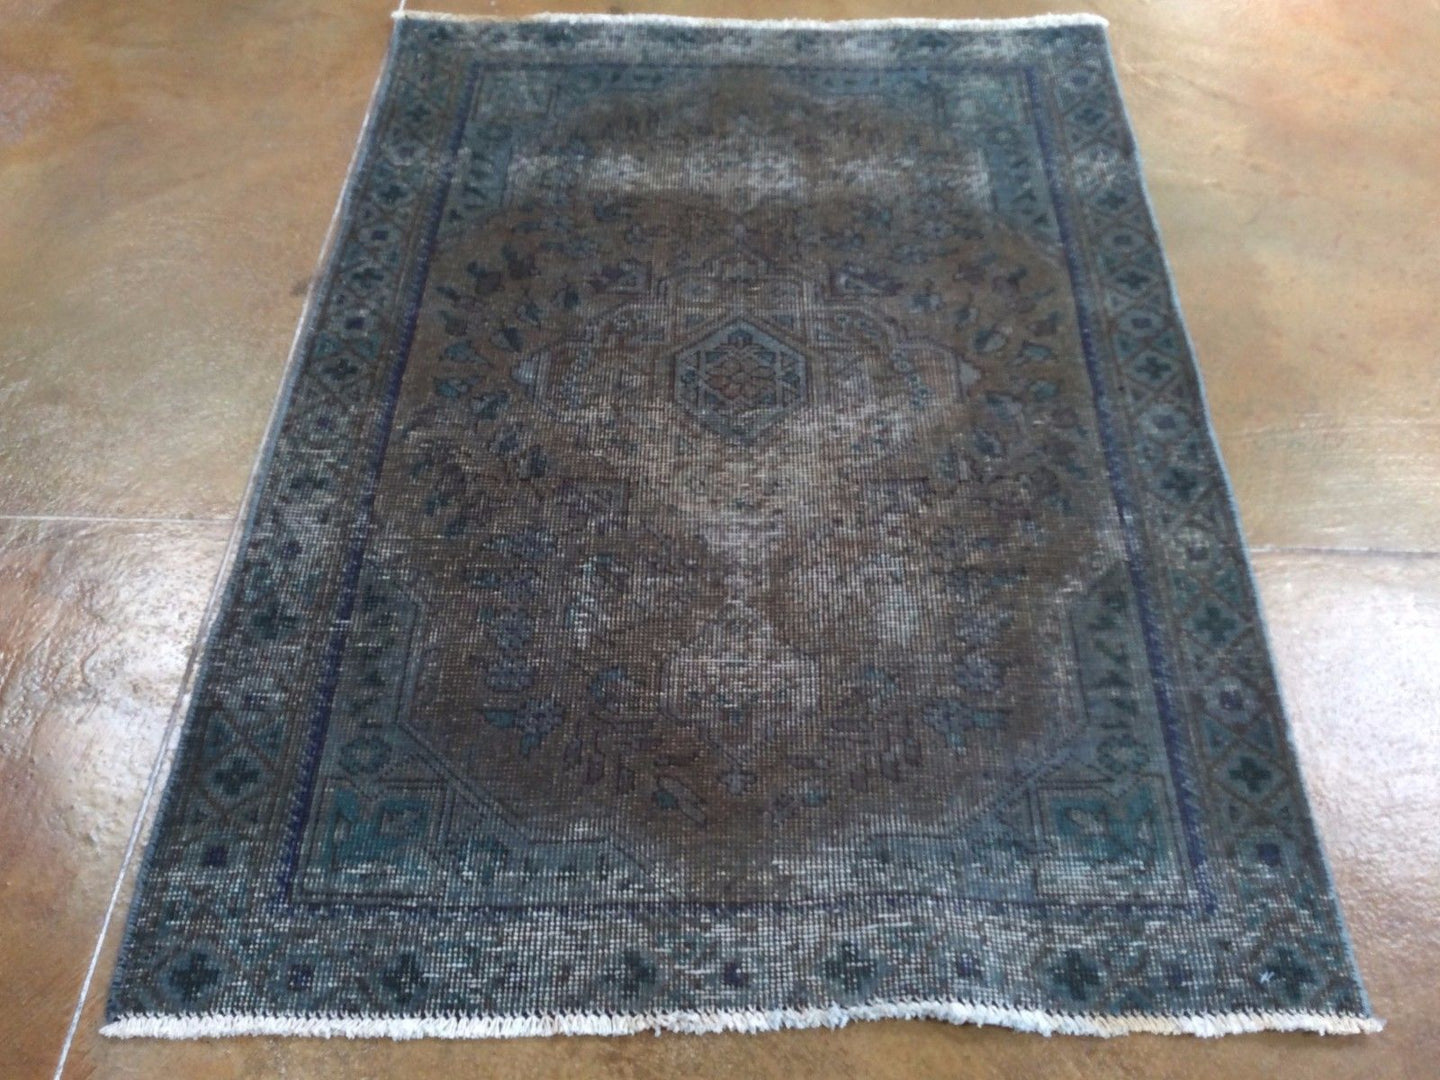 Persian Overdyed Pretty Traditional Design Handmade Splendid Handknotted Real Wool Unique Rug